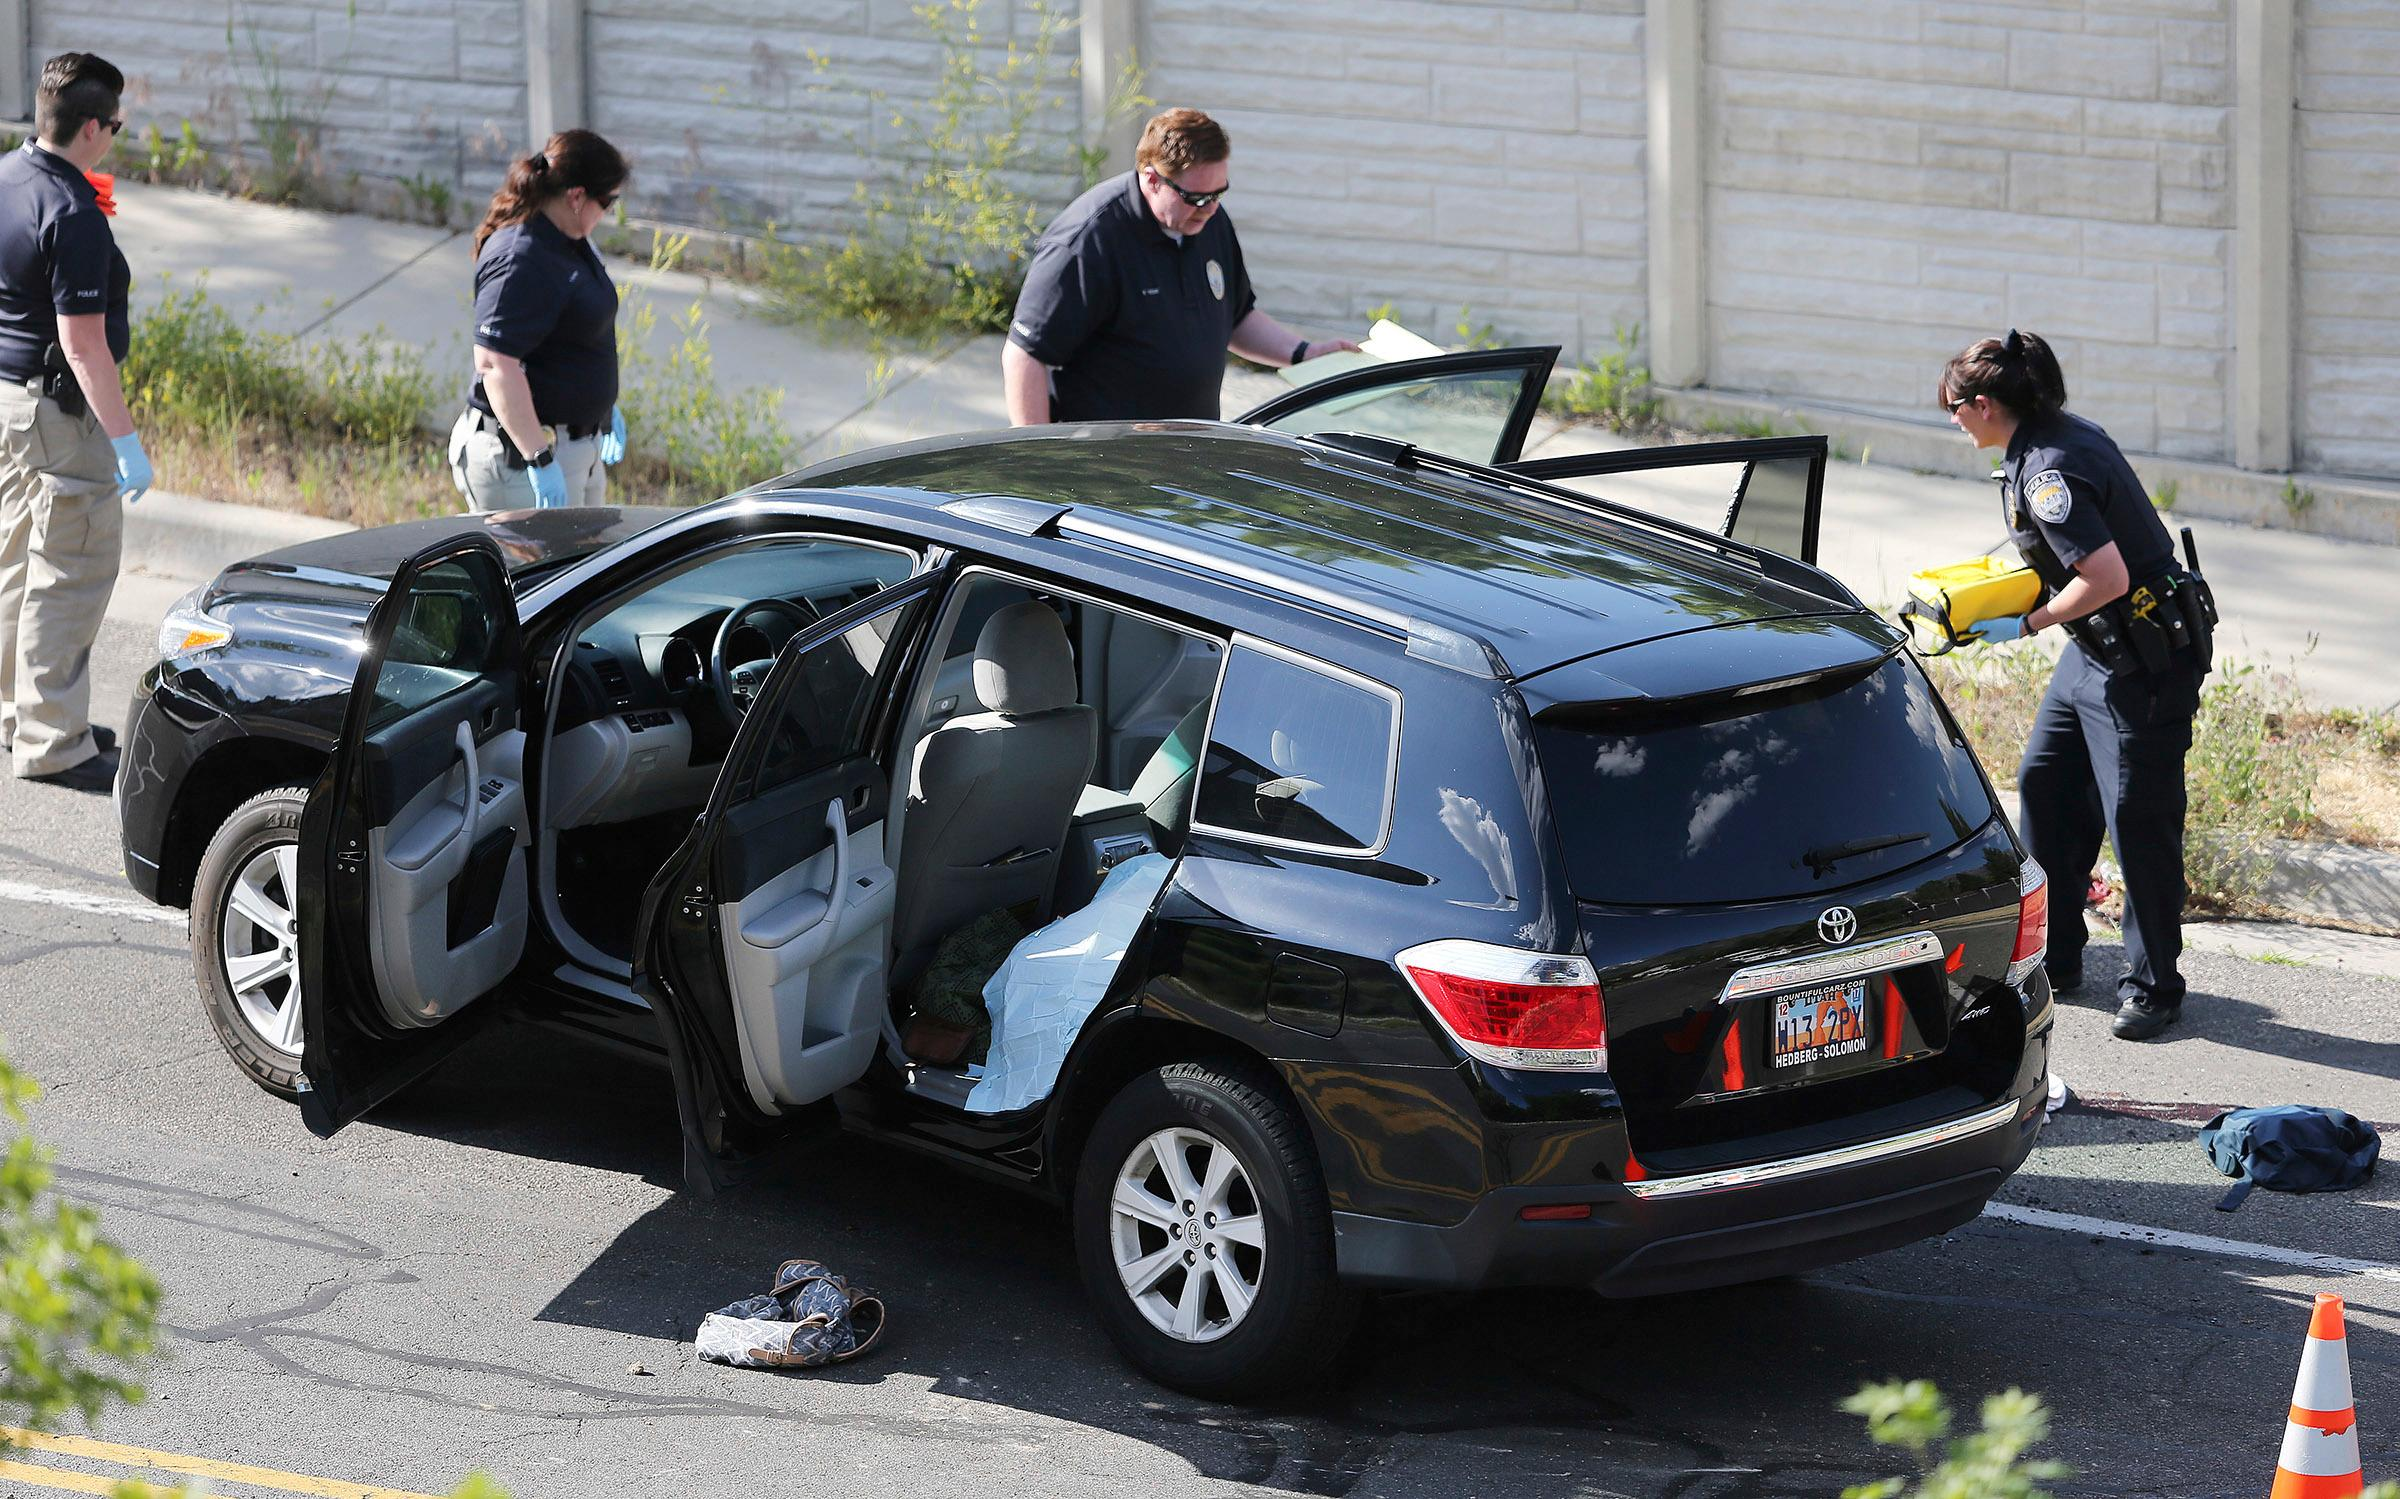 Crime scene investigators begin their work as Sandy police investigate a fatal shooting in a Salt Lake City suburb that left several people dead with another two injured, Tuesday, June 6, 2017, in Sandy, Utah. The shooting in a middle-class neighborhood in Sandy was reported to police as a domestic dispute, said Police Sgt. Jason Nielsen. (Scott G Winterton/The Deseret News via AP)